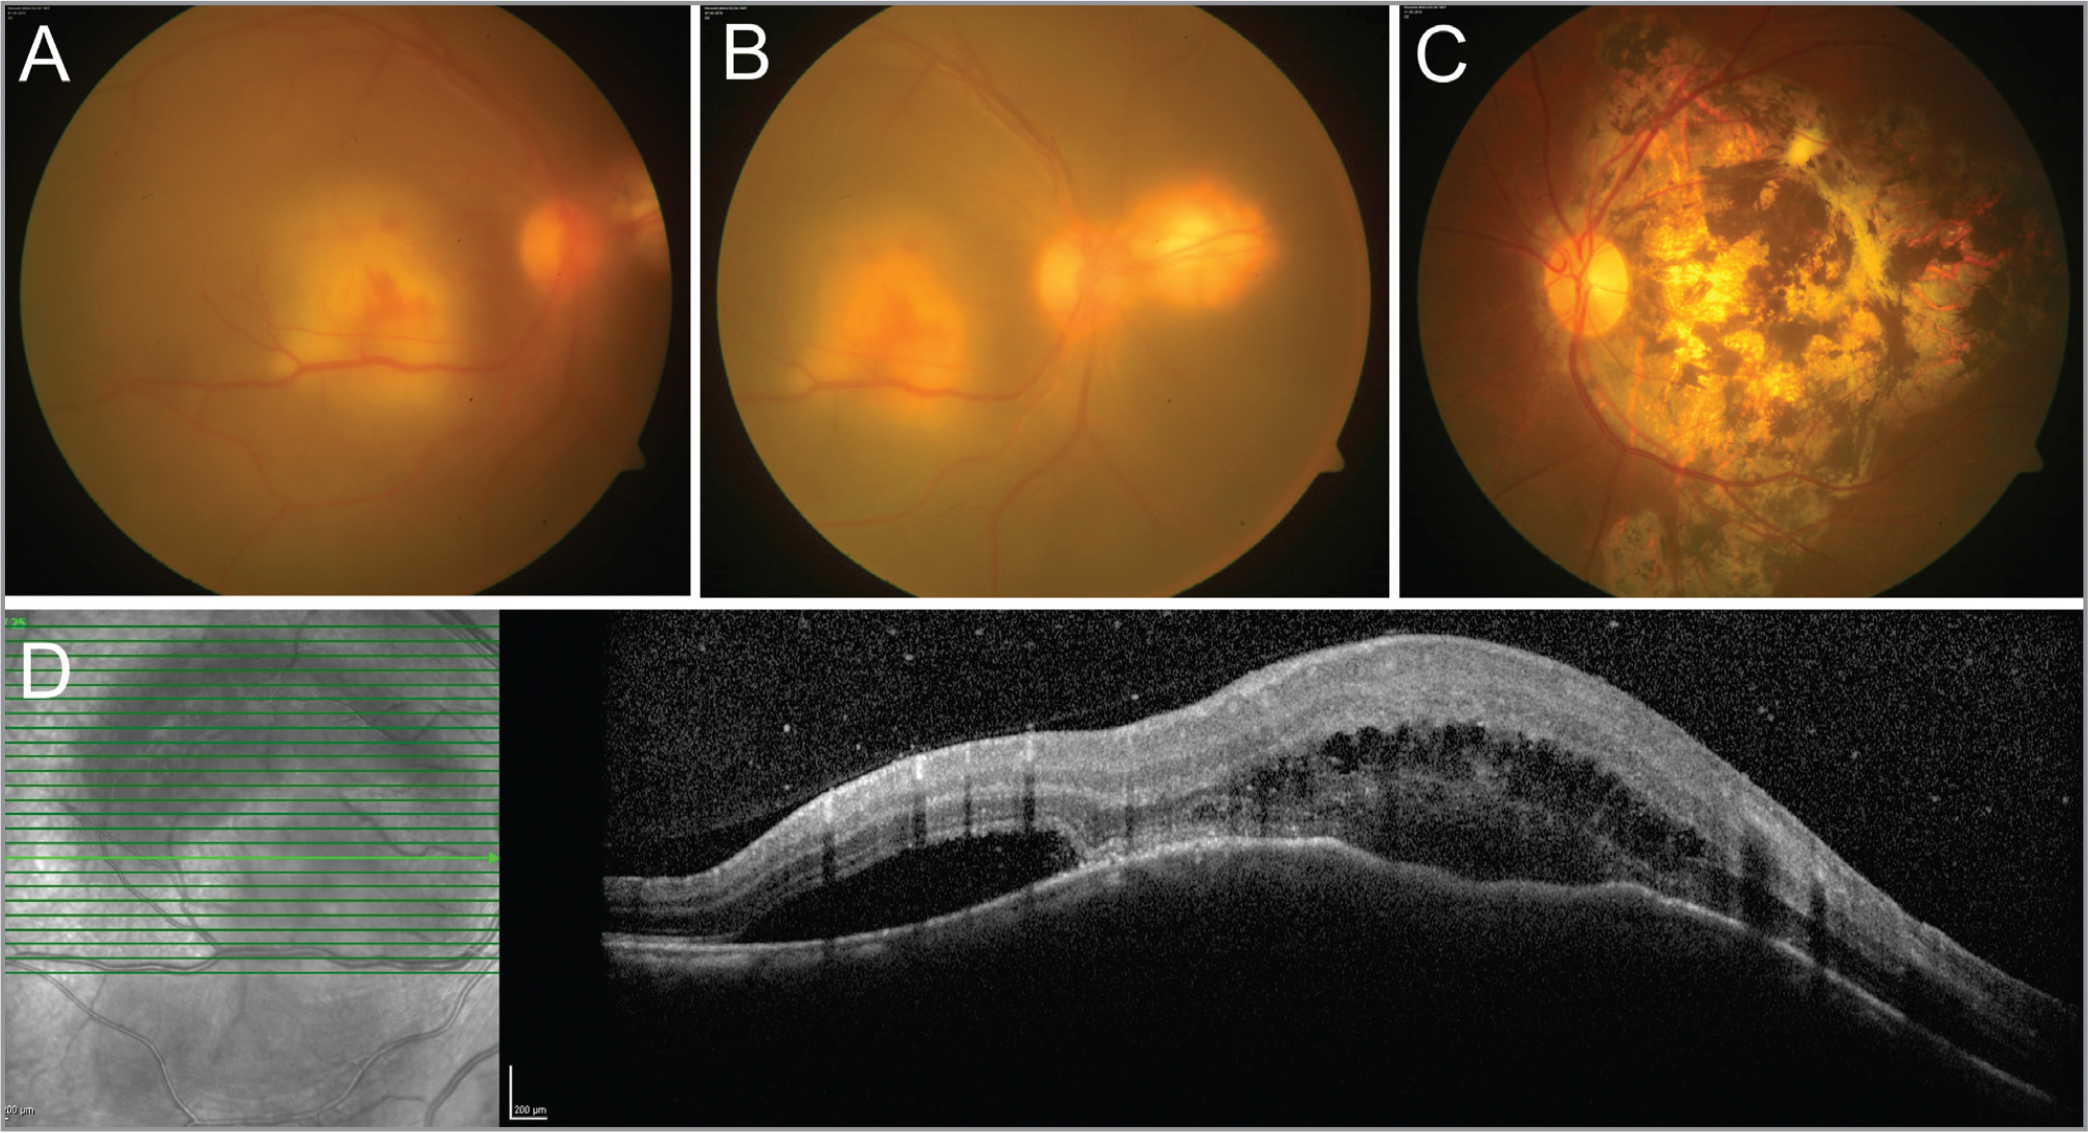 (A) Fundus photograph of the right eye shows presence of vitritis with a large, yellowish, raised subretinal lesion with overlying retinal hemorrhages and surrounding exudative retinal detachment suggestive of a vascularized choroidal granuloma. (B) Fundus photograph of the nasal field shows the presence of a healed chorioretinal lesion with well-defined margins and no overlying fluid. (C) Fundus photograph of the left eye shows a healed pigmented chorioretinal scar involving the macula. (D) Optical coherence tomography line scan passing through the subretinal lesion in the right eye shows dome-shaped elevations of the retinal pigment epithelium with presence of subretinal fluid and hyperreflective deposits suggestive of fibrin. There is hyporeflectivity of the underlying choroid.